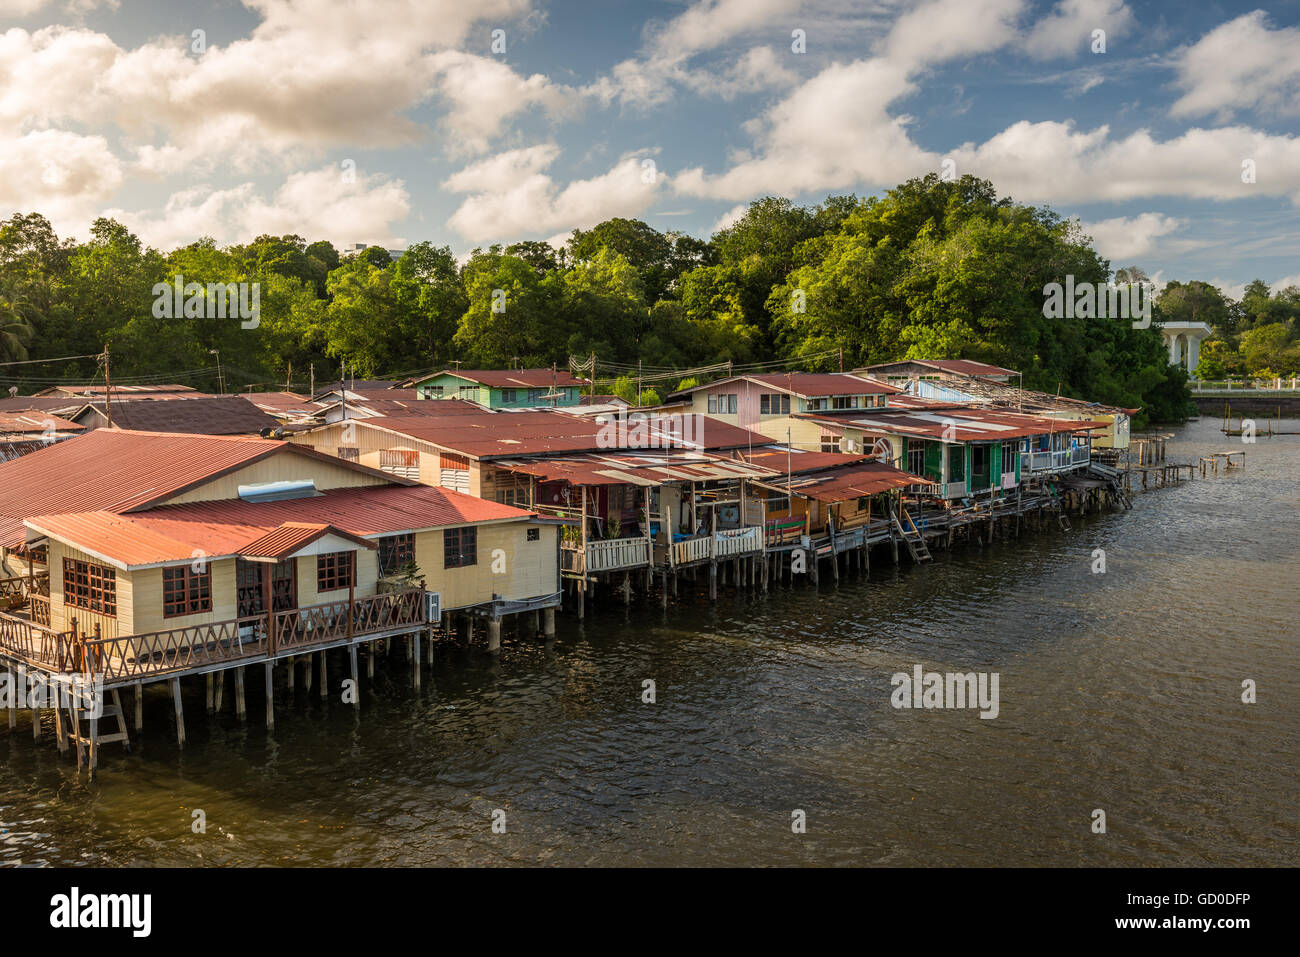 The river village of Kampong Ayer in Bandar Seri Begawan, Brunei. - Stock Image